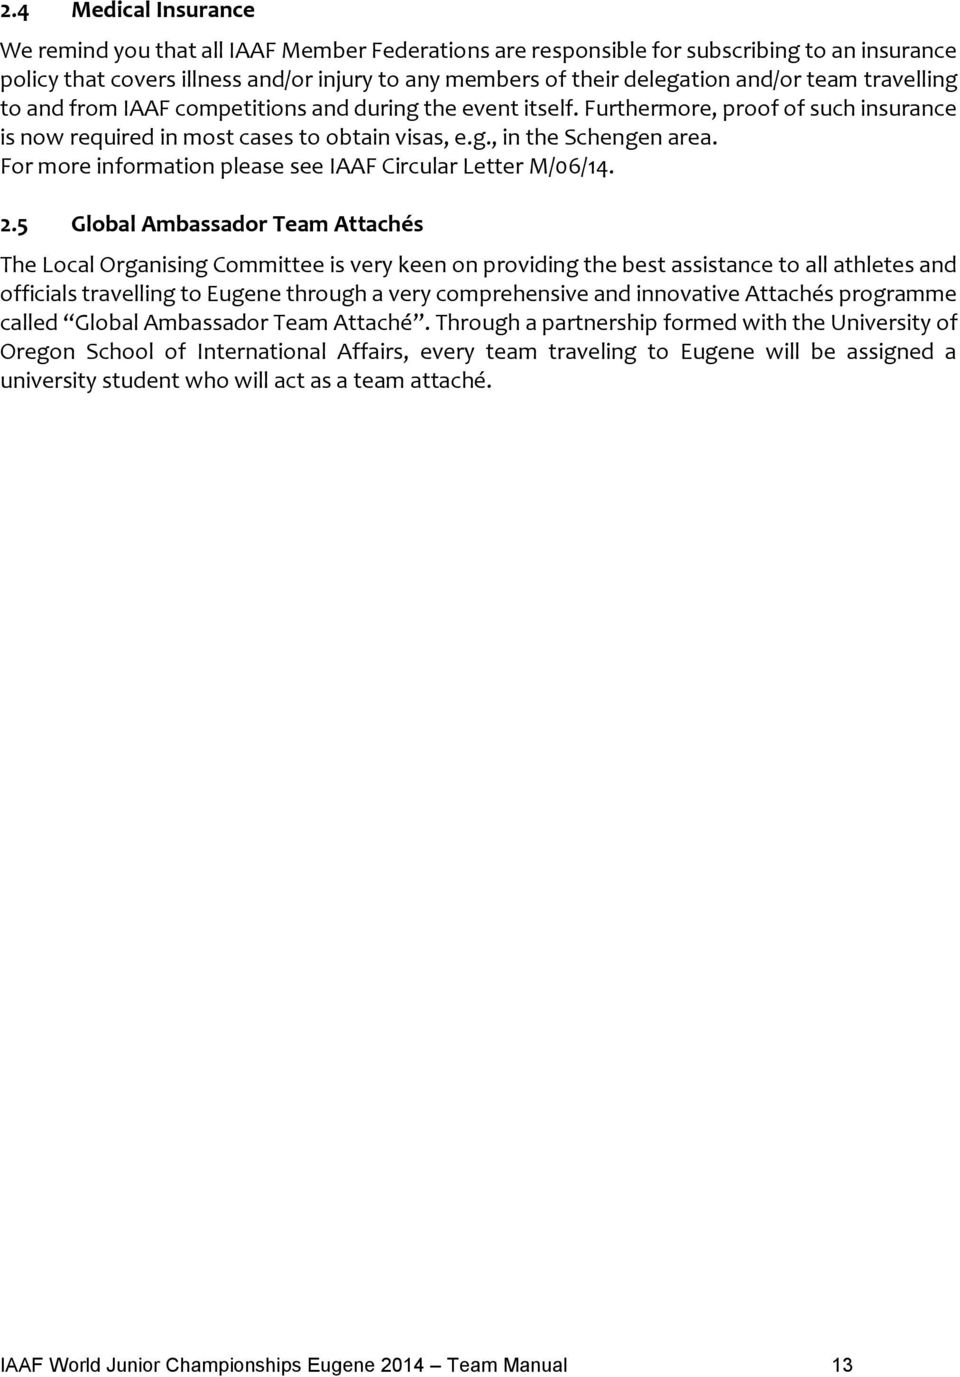 For more information please see IAAF Circular Letter M/06/14. 2.